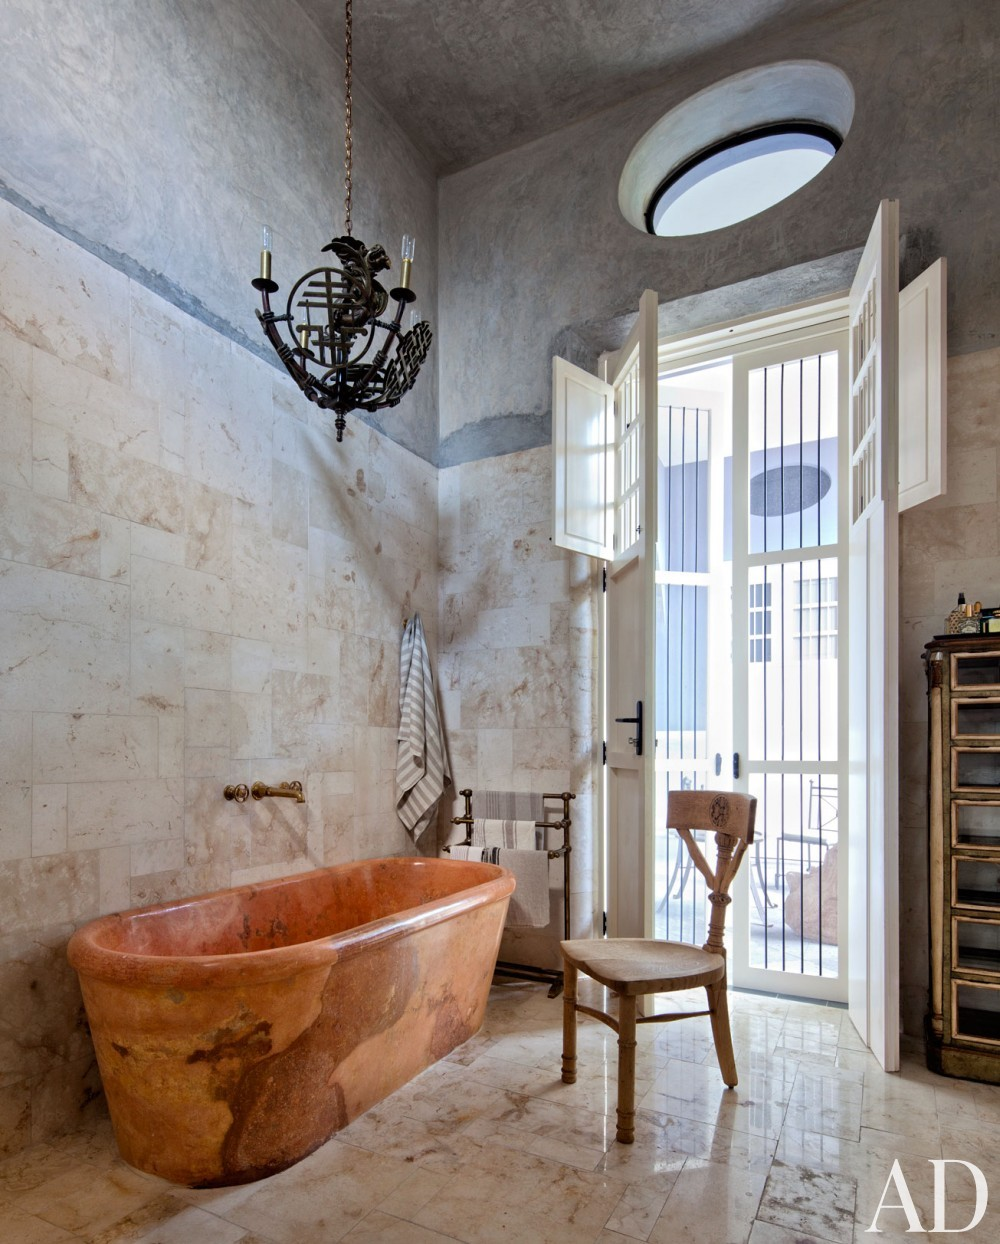 Exotic Bathroom by Robert Willson and David Serrano and Bohl Architects in Merida, Mexico